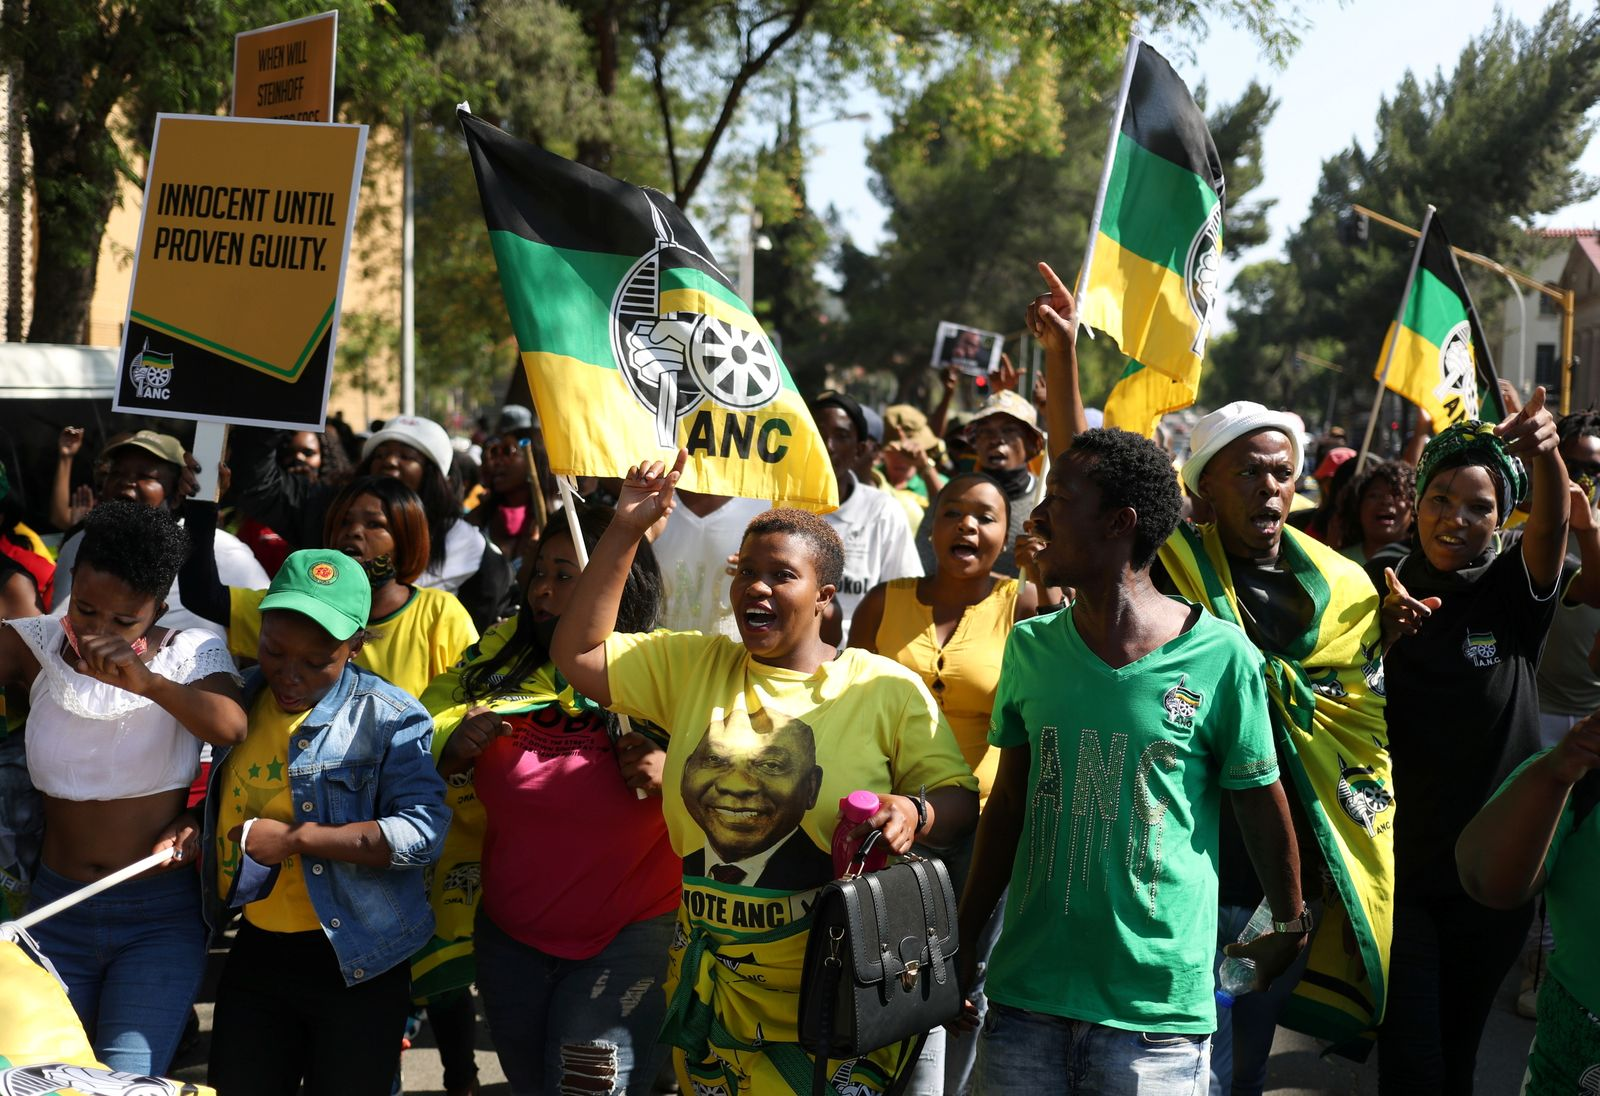 ANC supporters carry placards and flags ahead of the court appearance of Ace Magashule, the secretary general of South Africa's ruling African National Congress, at the Bloemfontein high court in the Free State province